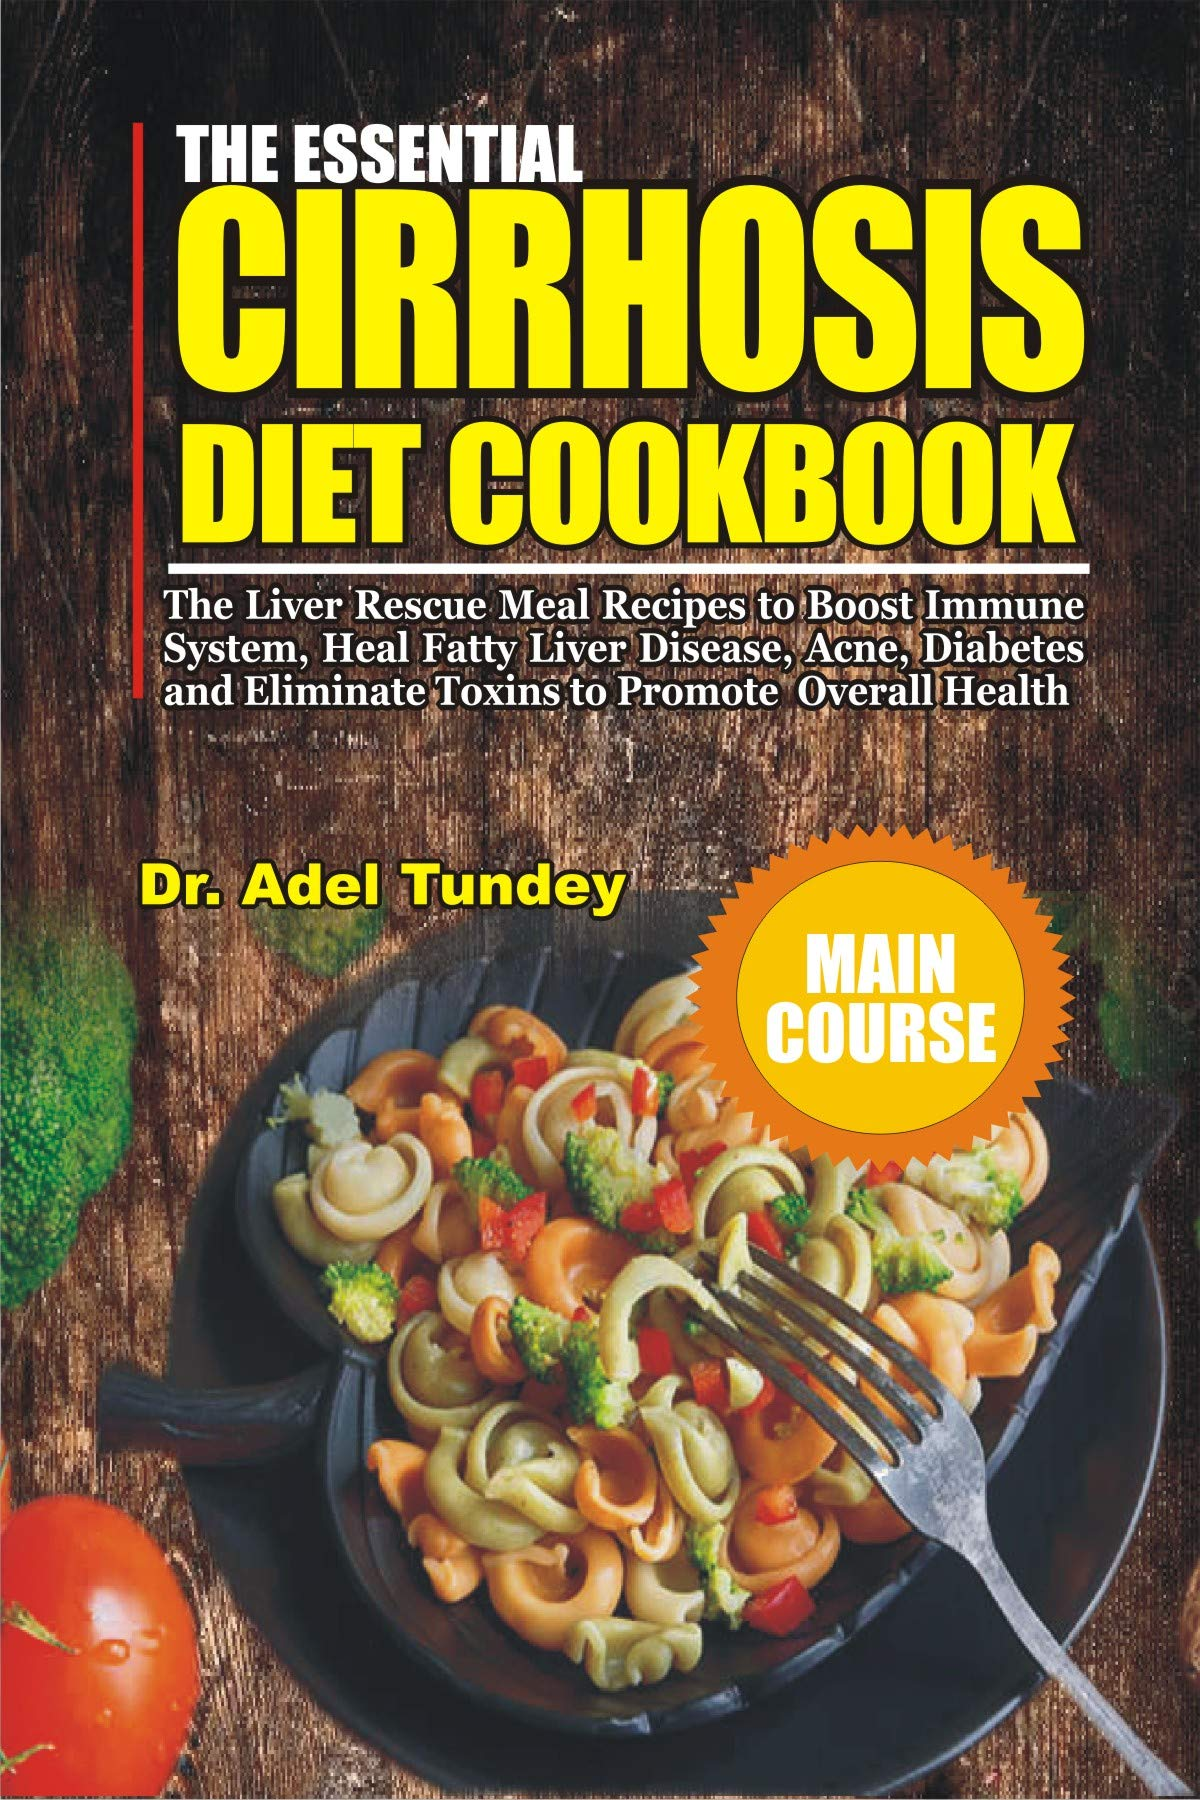 The Essential Cirrhosis Diet Cookbook: The Liver Rescue Meal Recipes to Boost Immune System, Heal Fatty Liver Disease, Acne, Diabetes and Eliminate Toxins to Promote Overall Health